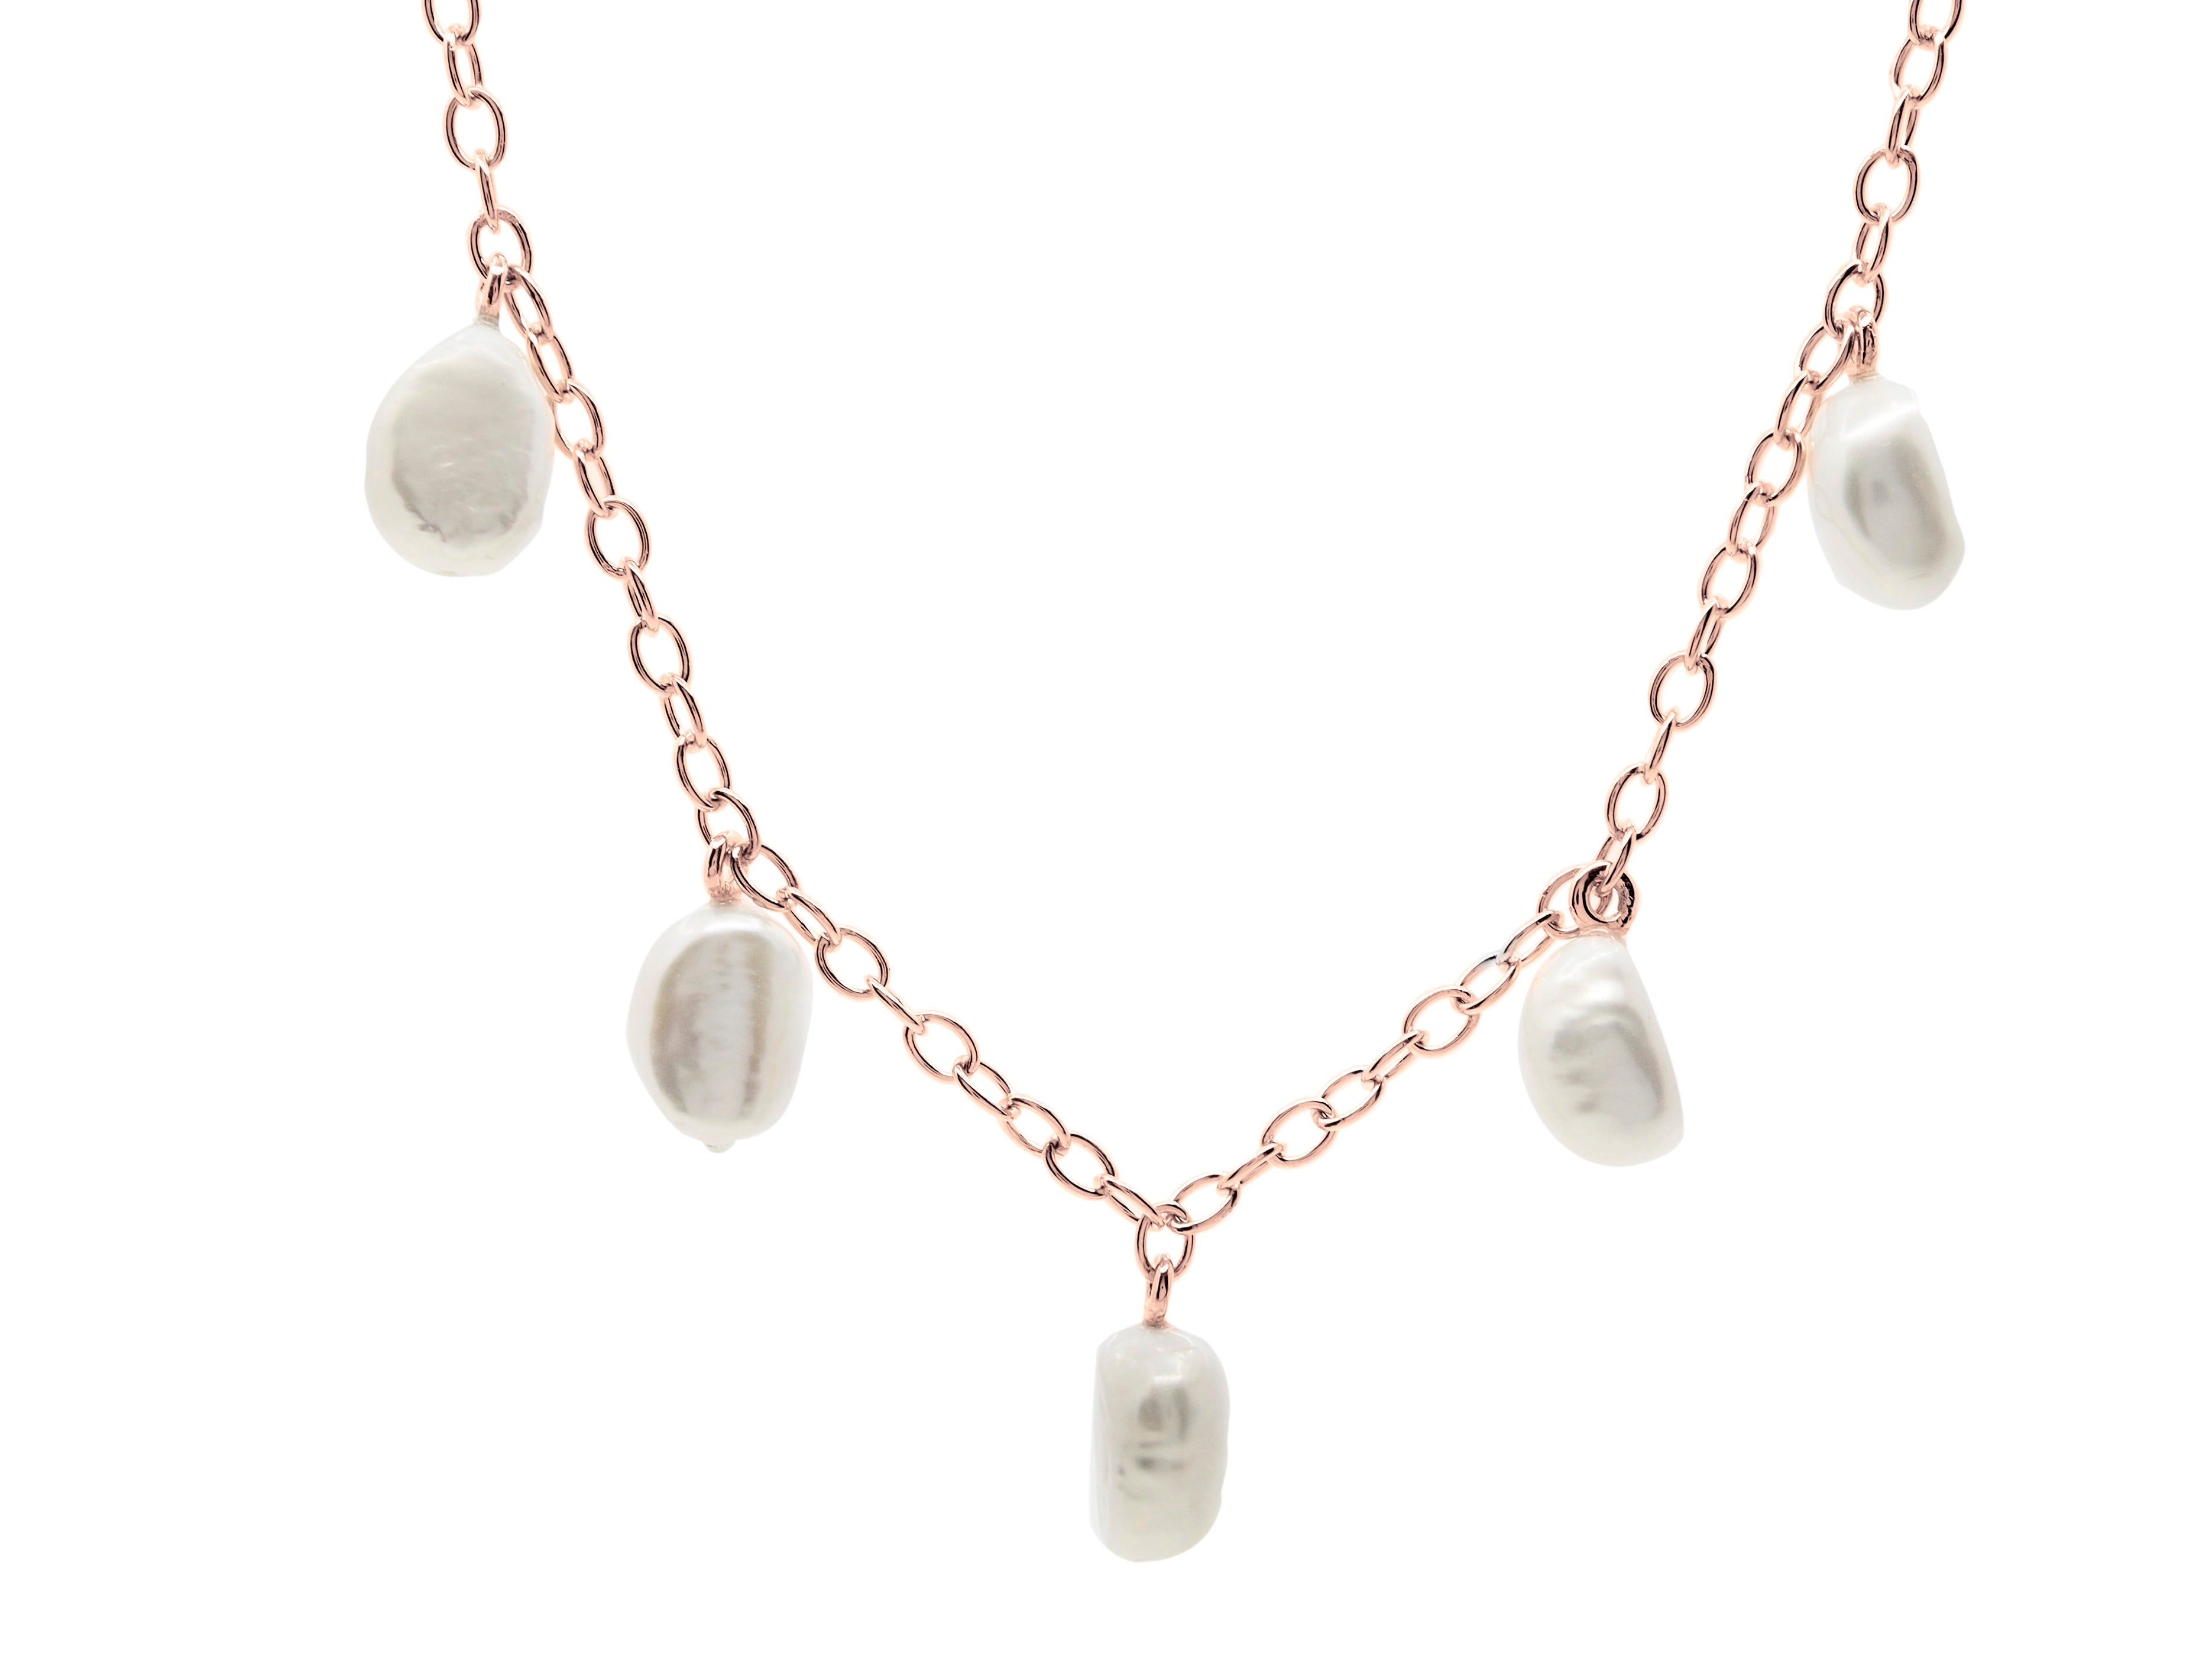 Cable beach baroque pearl necklace, sterling silver, rose gold plated